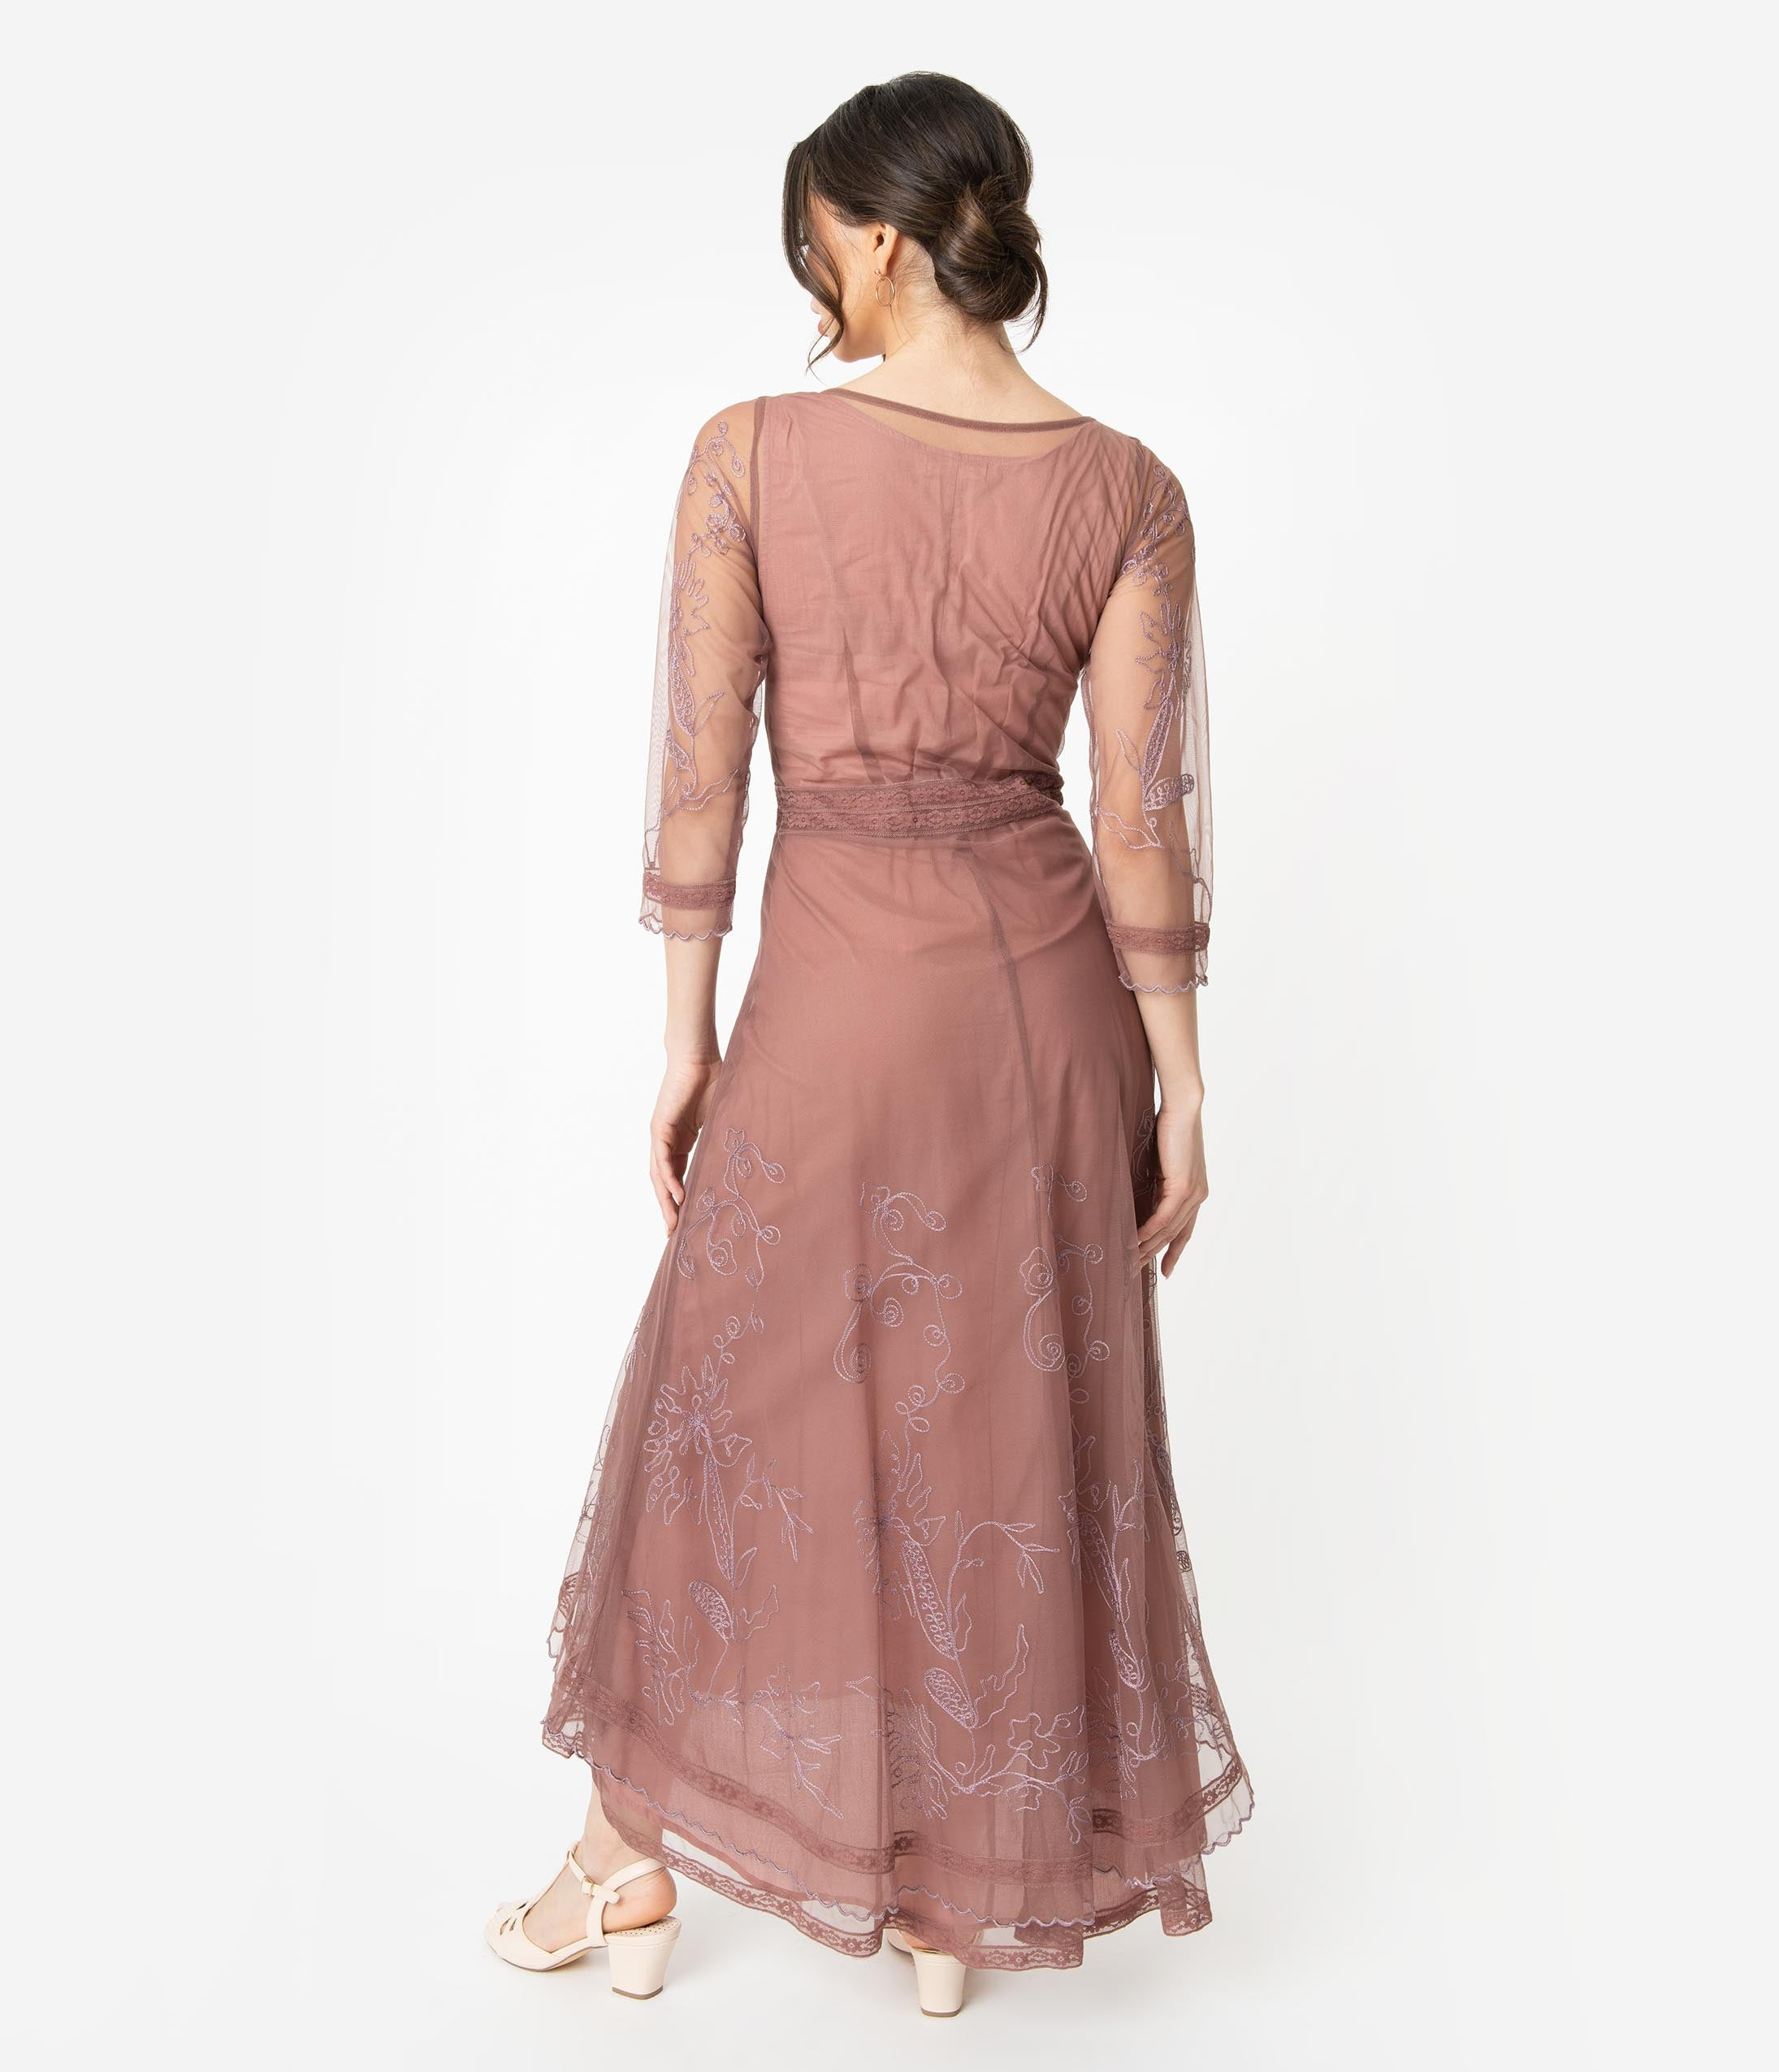 8d708774fb0 Mauve Rose Embroidered Tulle Downton Abbey Edwardian Tea Party Dress